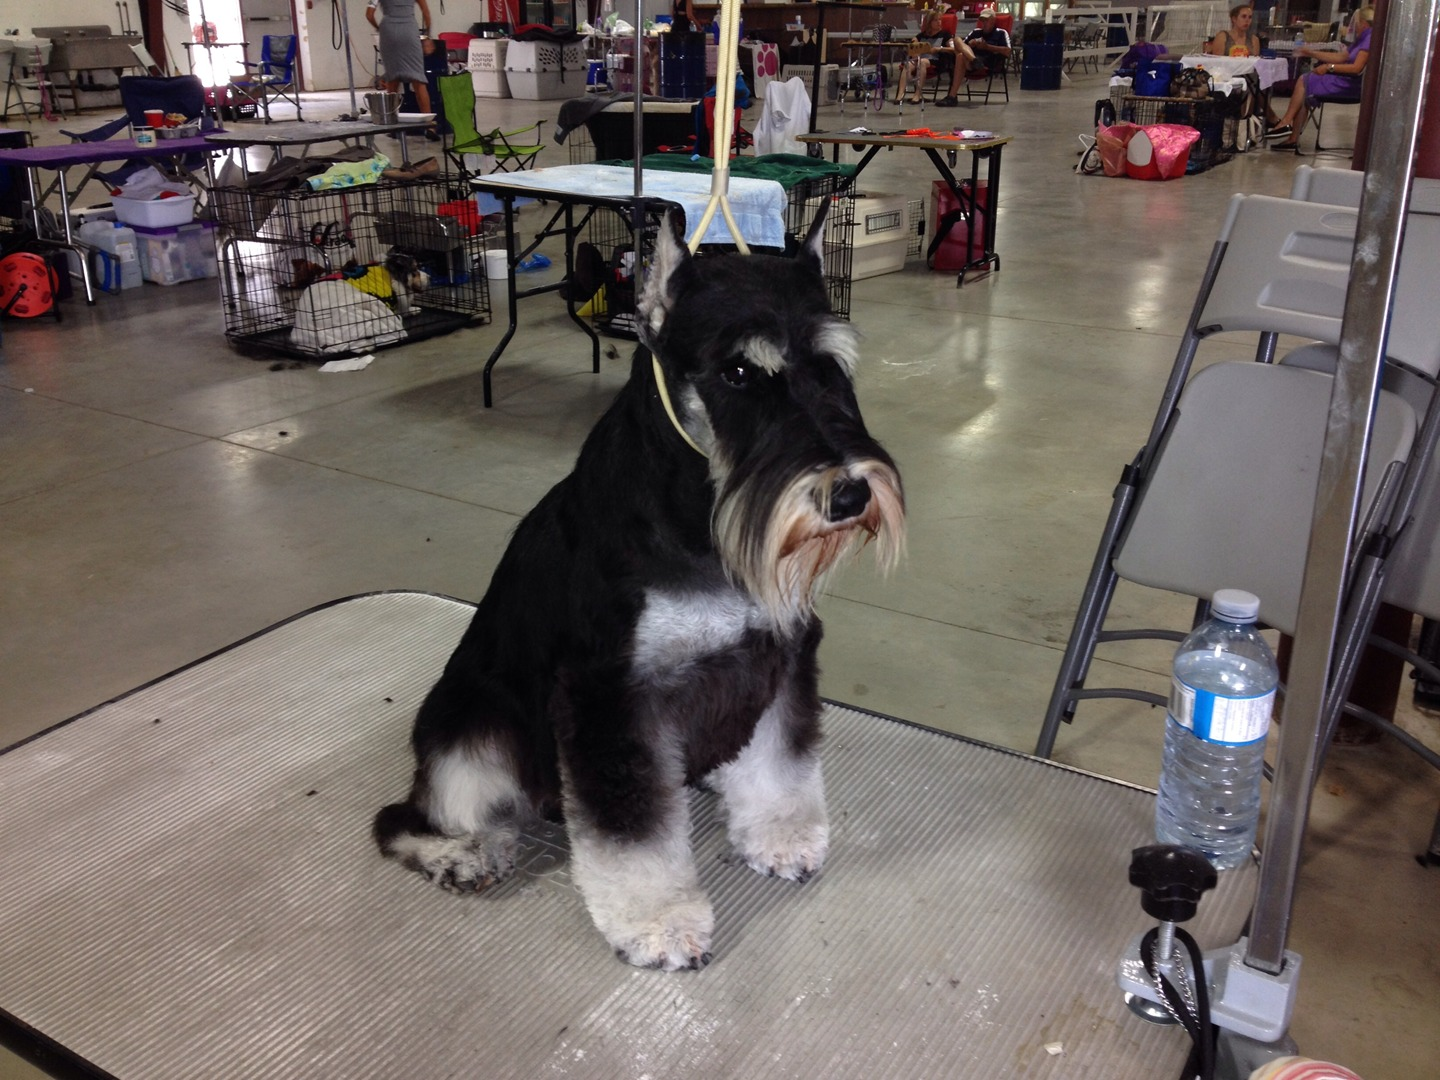 Griff getting ready for Lindsay dog show.